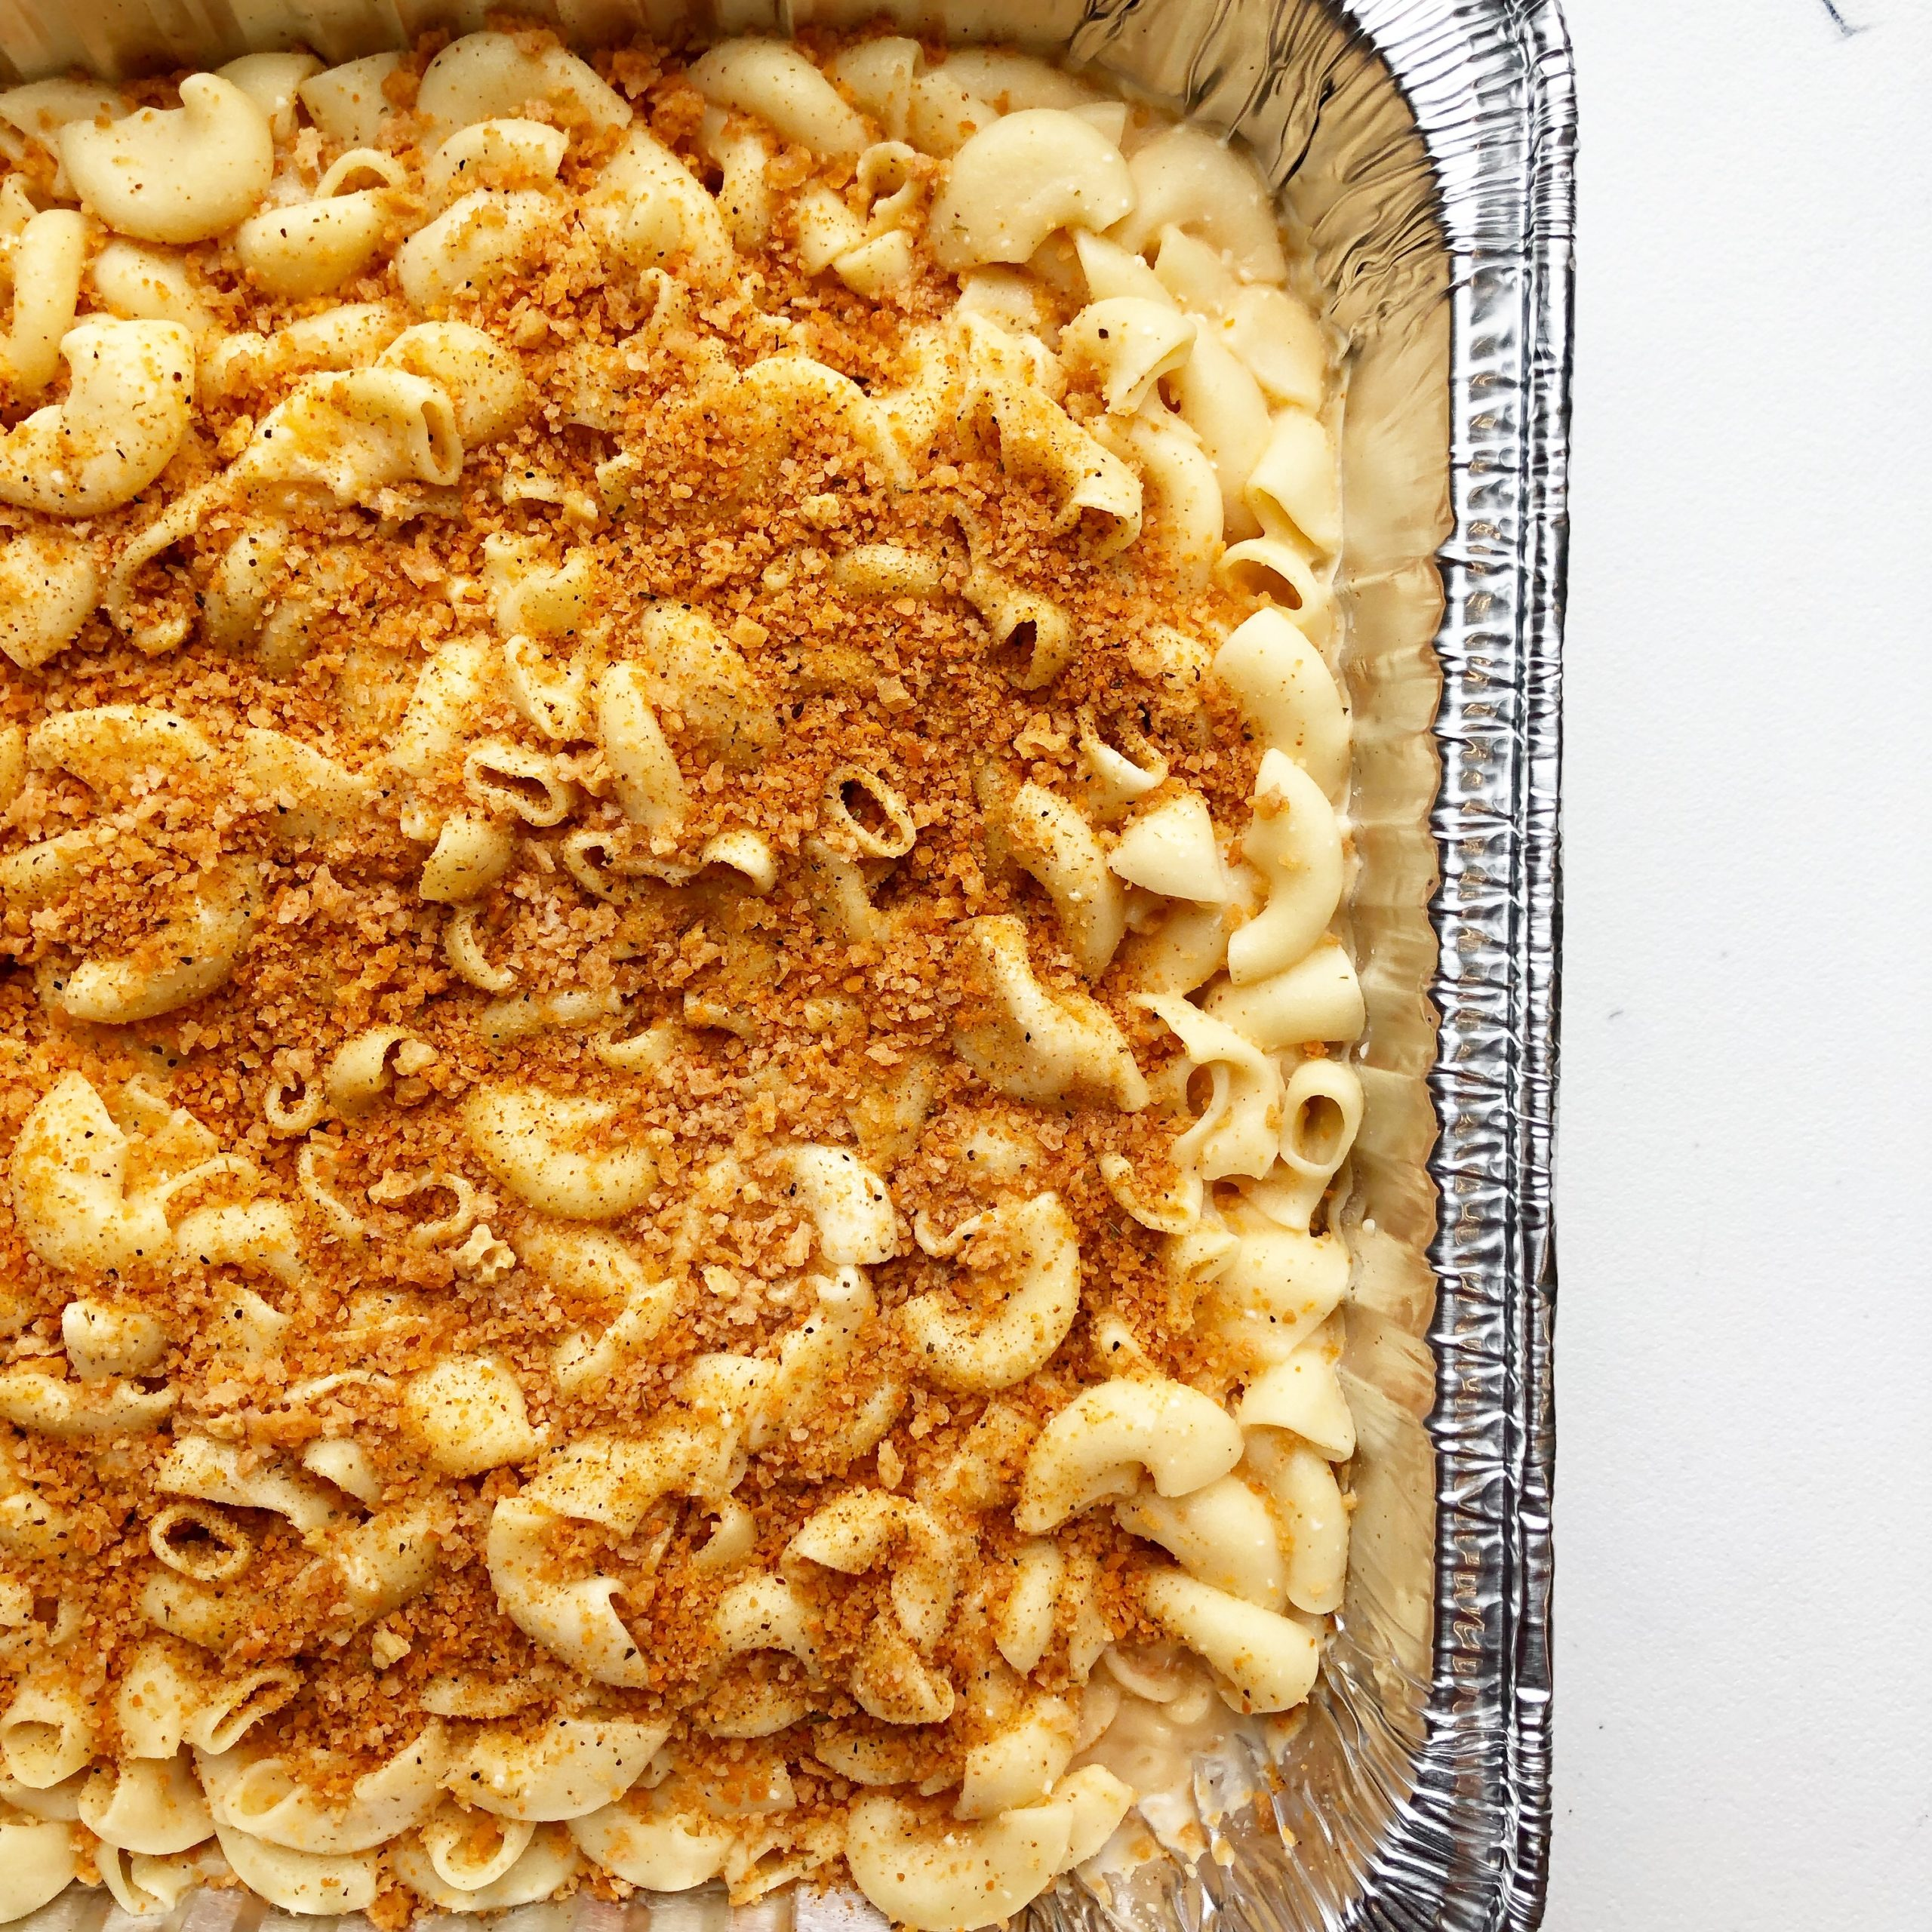 macaroni and cheese in a foil tray